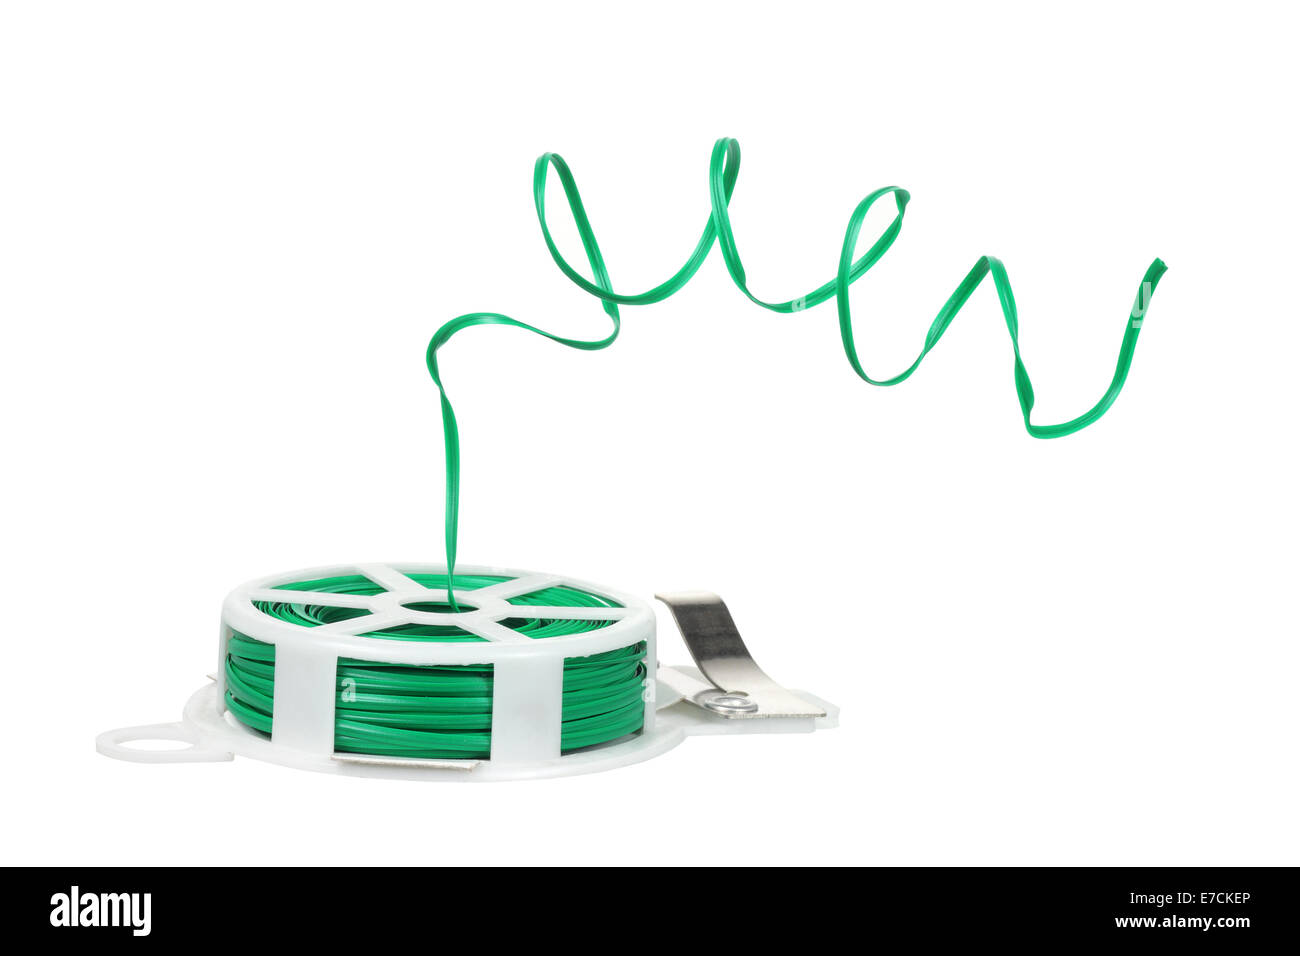 Attractive Wire Reel Clip Art Picture Collection - Electrical and ...